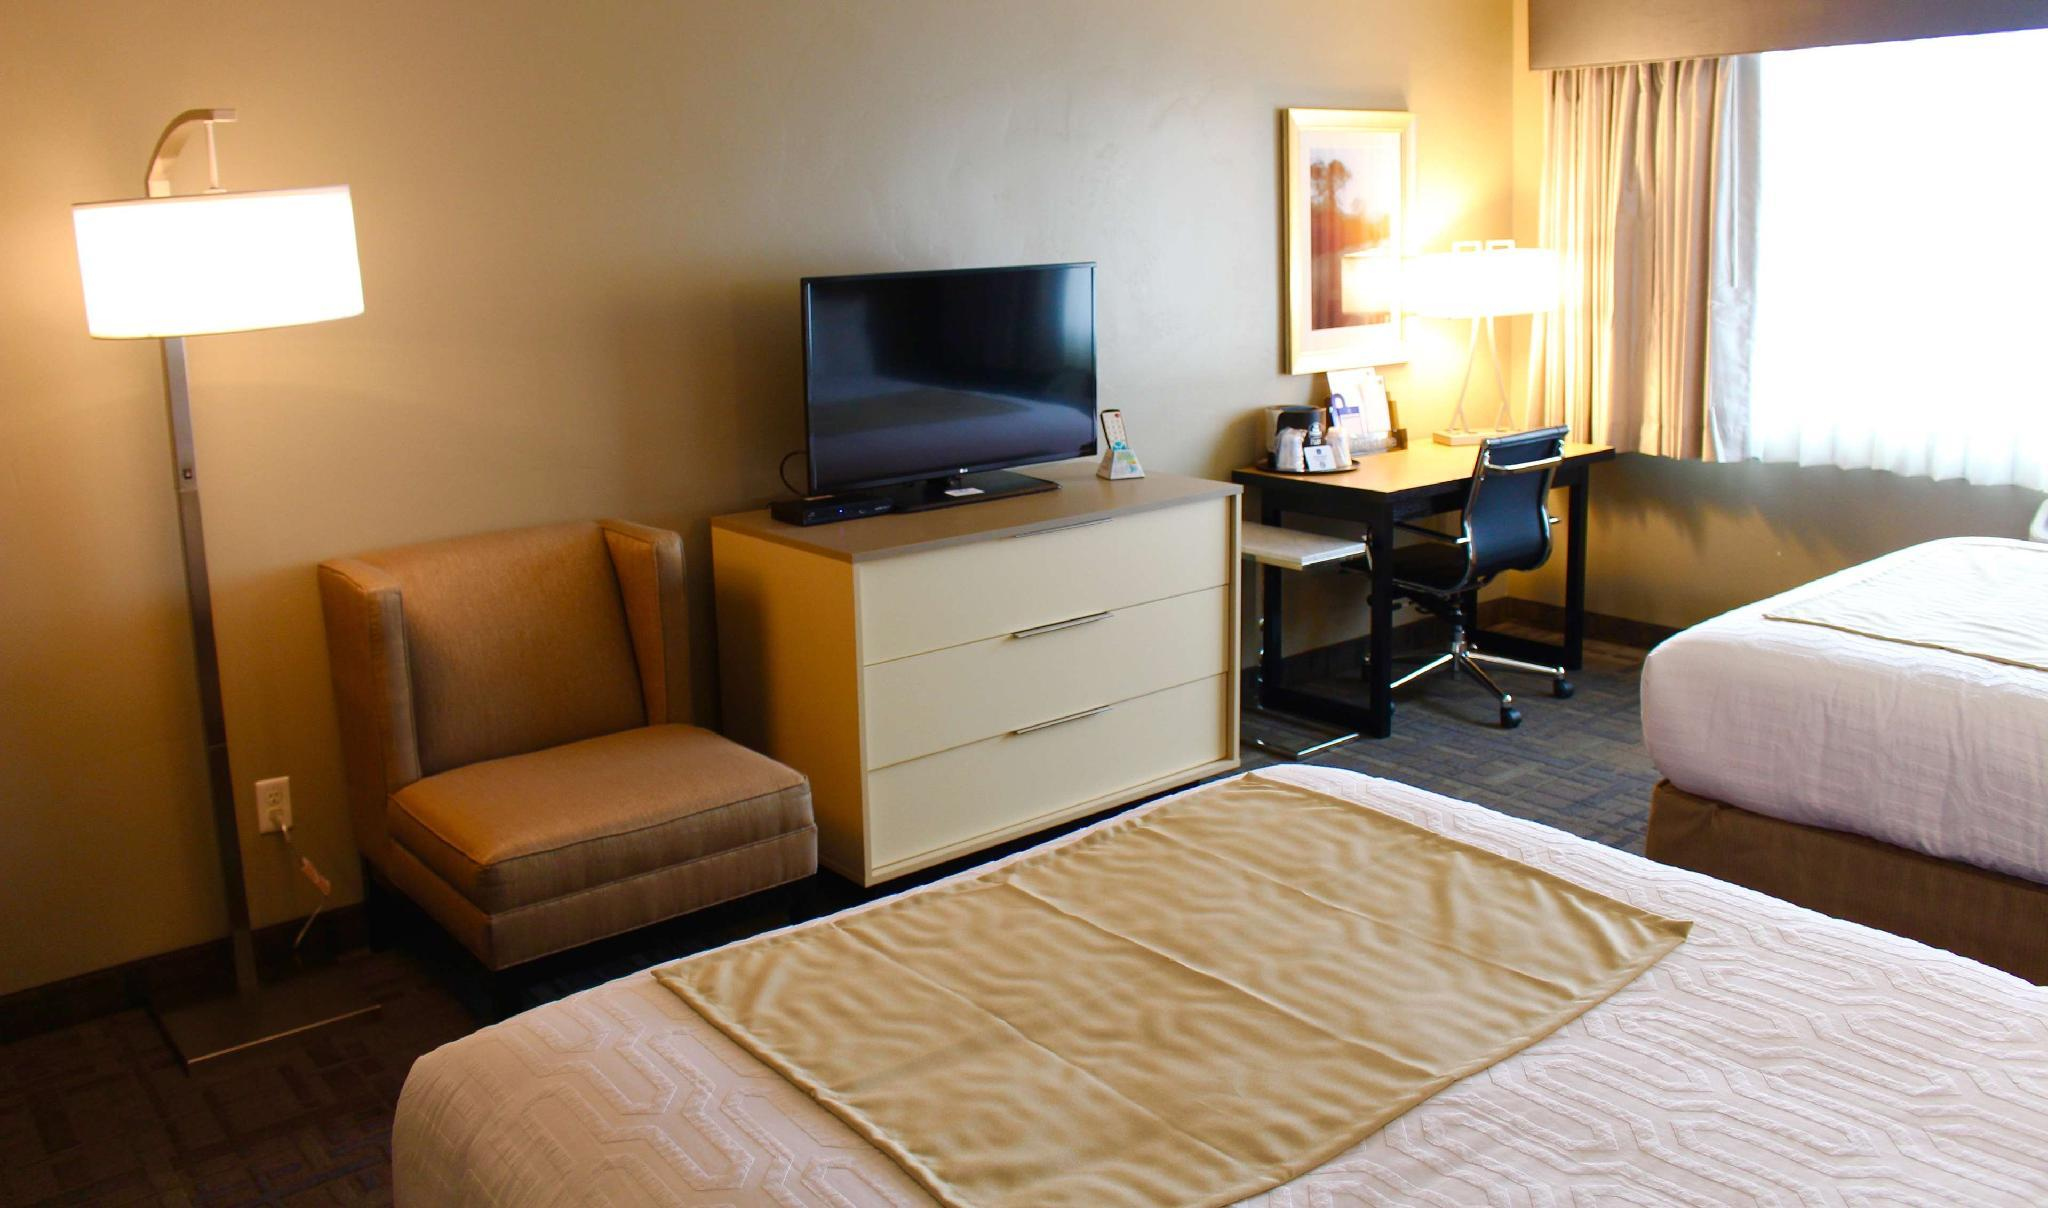 2 Queen Beds With Kitchenette Non-Smoking